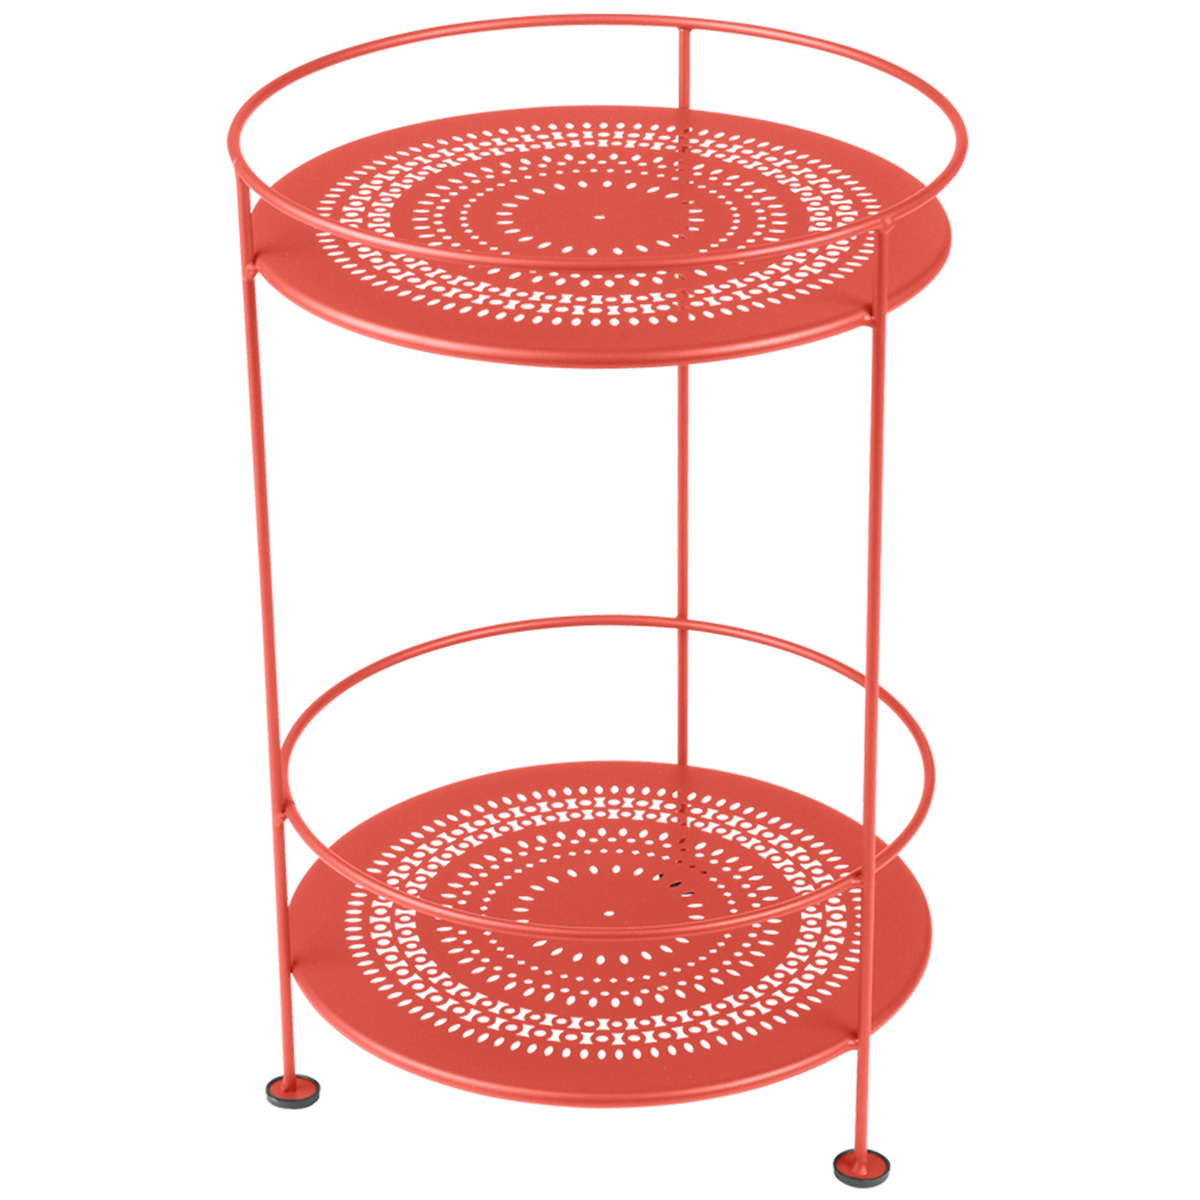 Fermob Guinguette table, capucine from Fermob